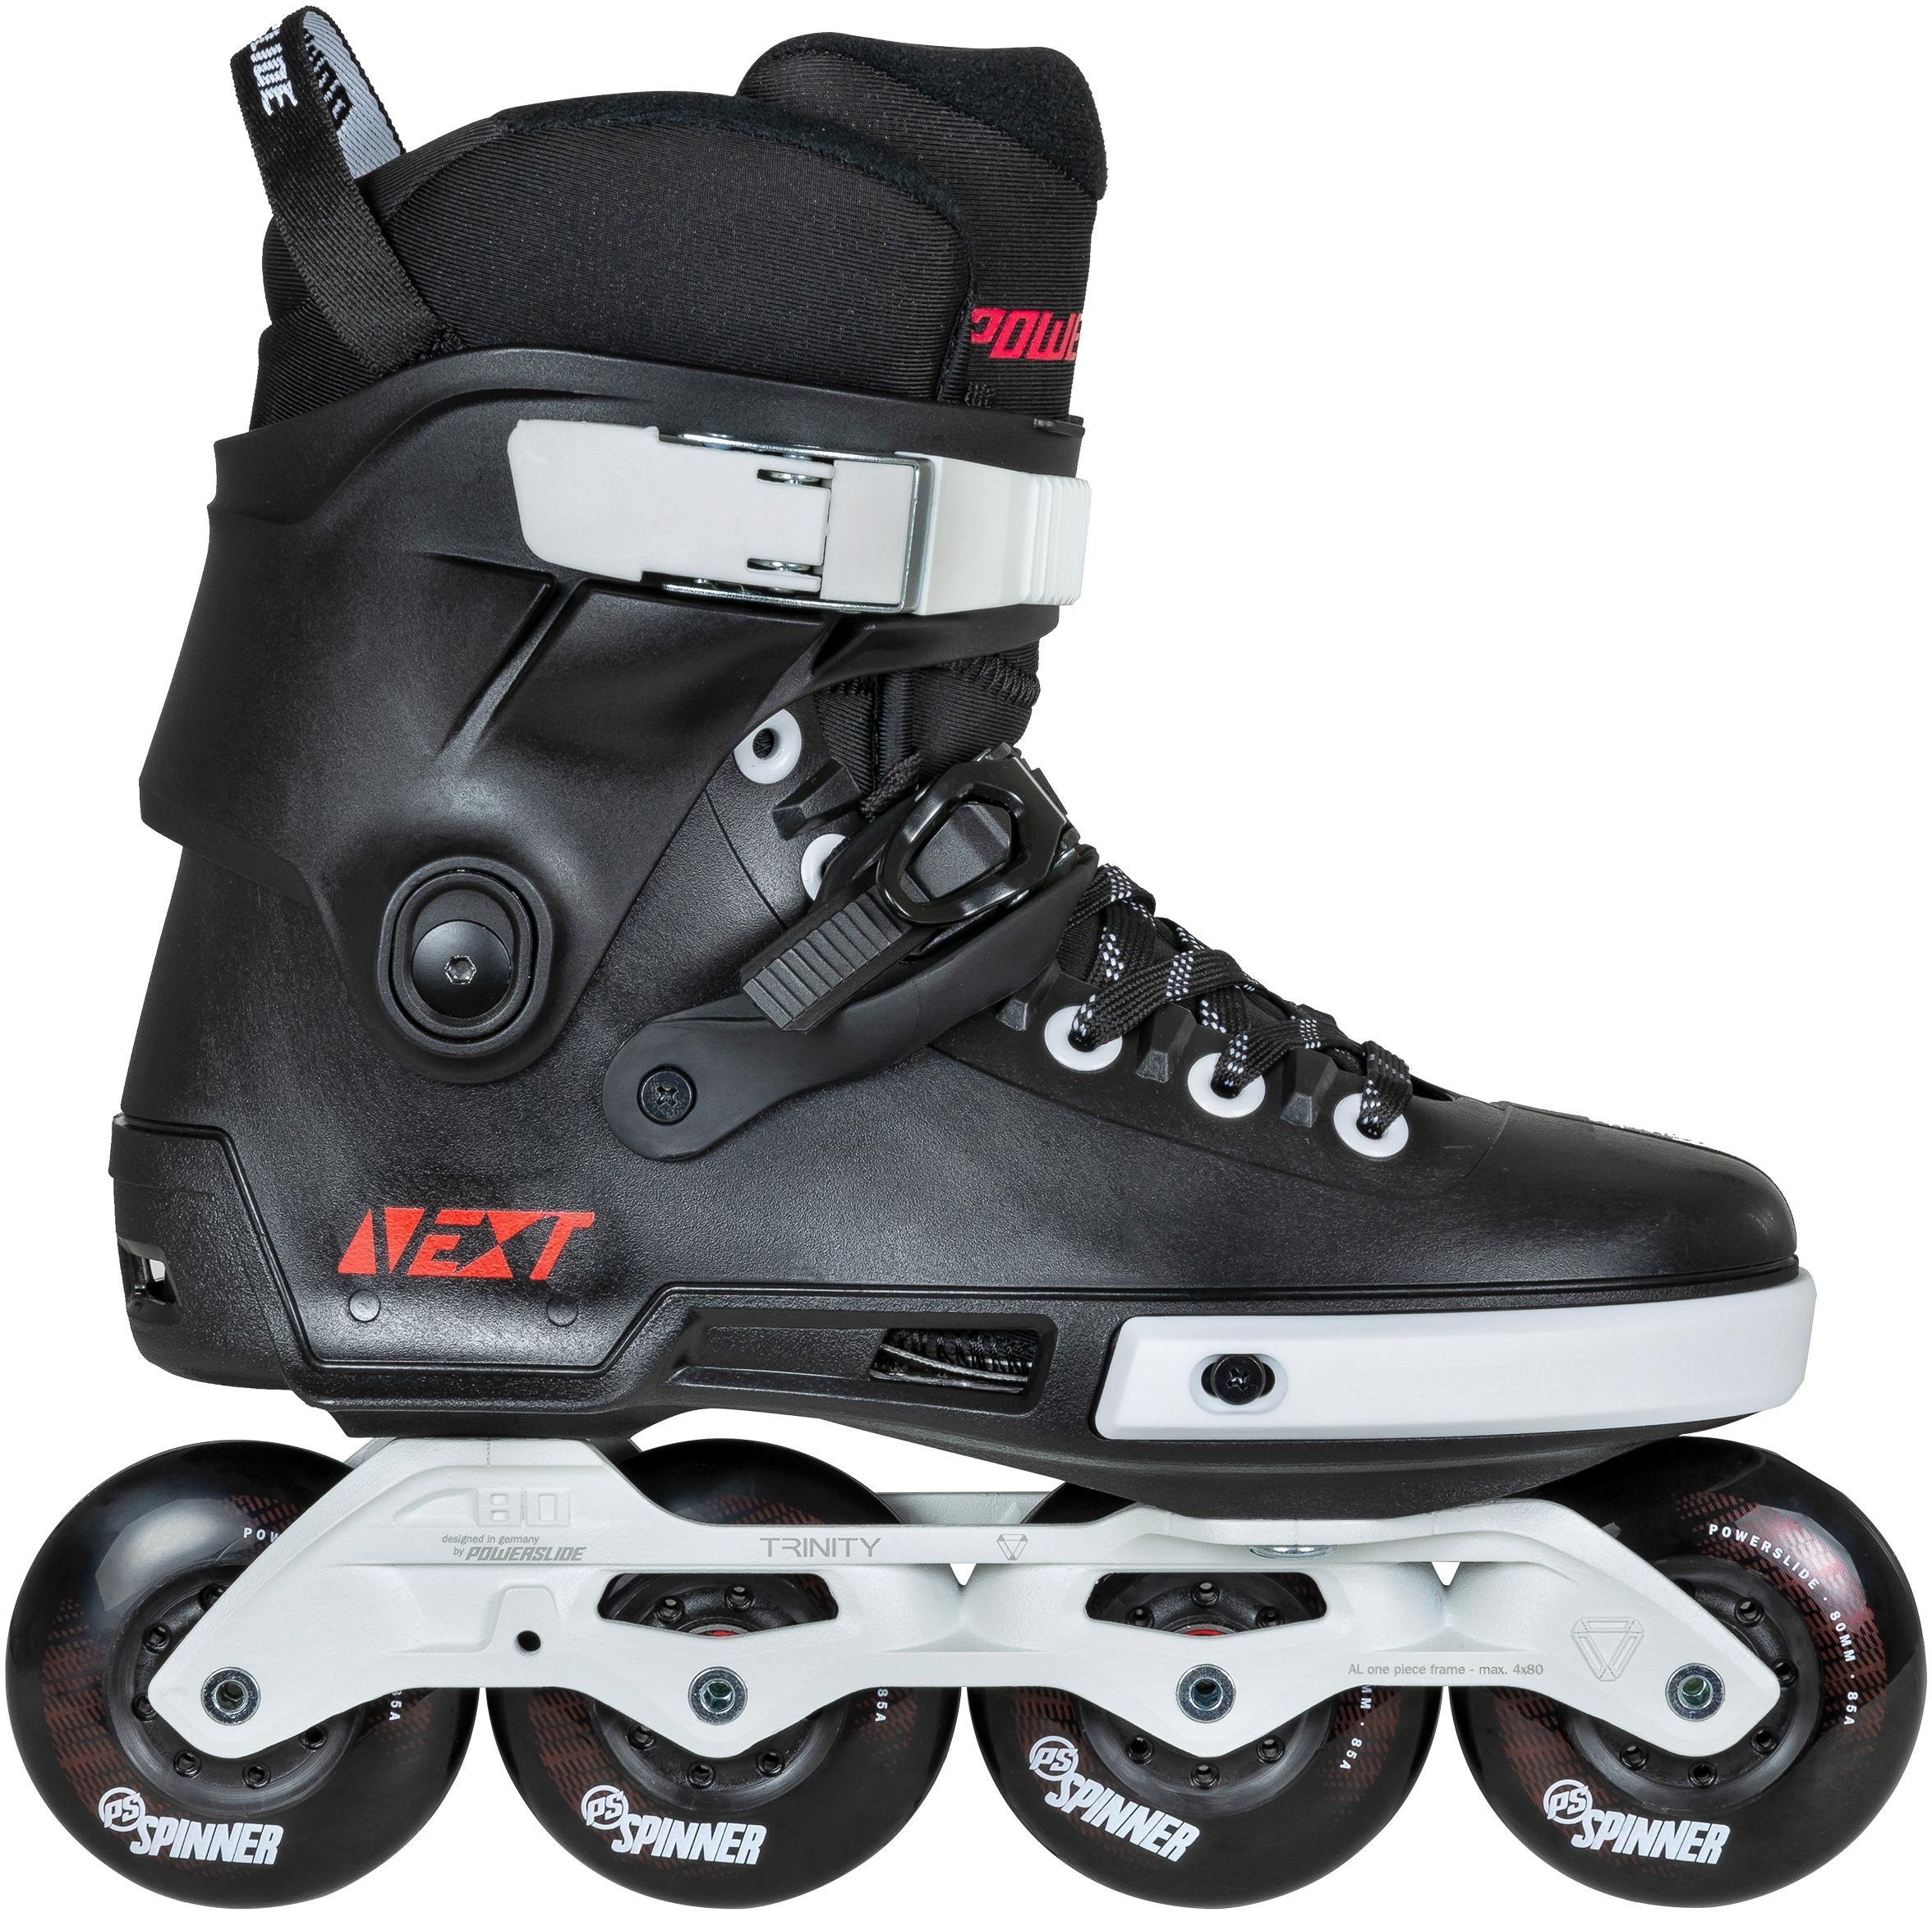 f0029485978 ... Powerslide ONE inlineskates »PS ONE Lancer Men«, Powerslide SWELL  inlineskates »Swell Metallic Black 110«, Powerslide inlineskates »NEXT 100  white«, ...